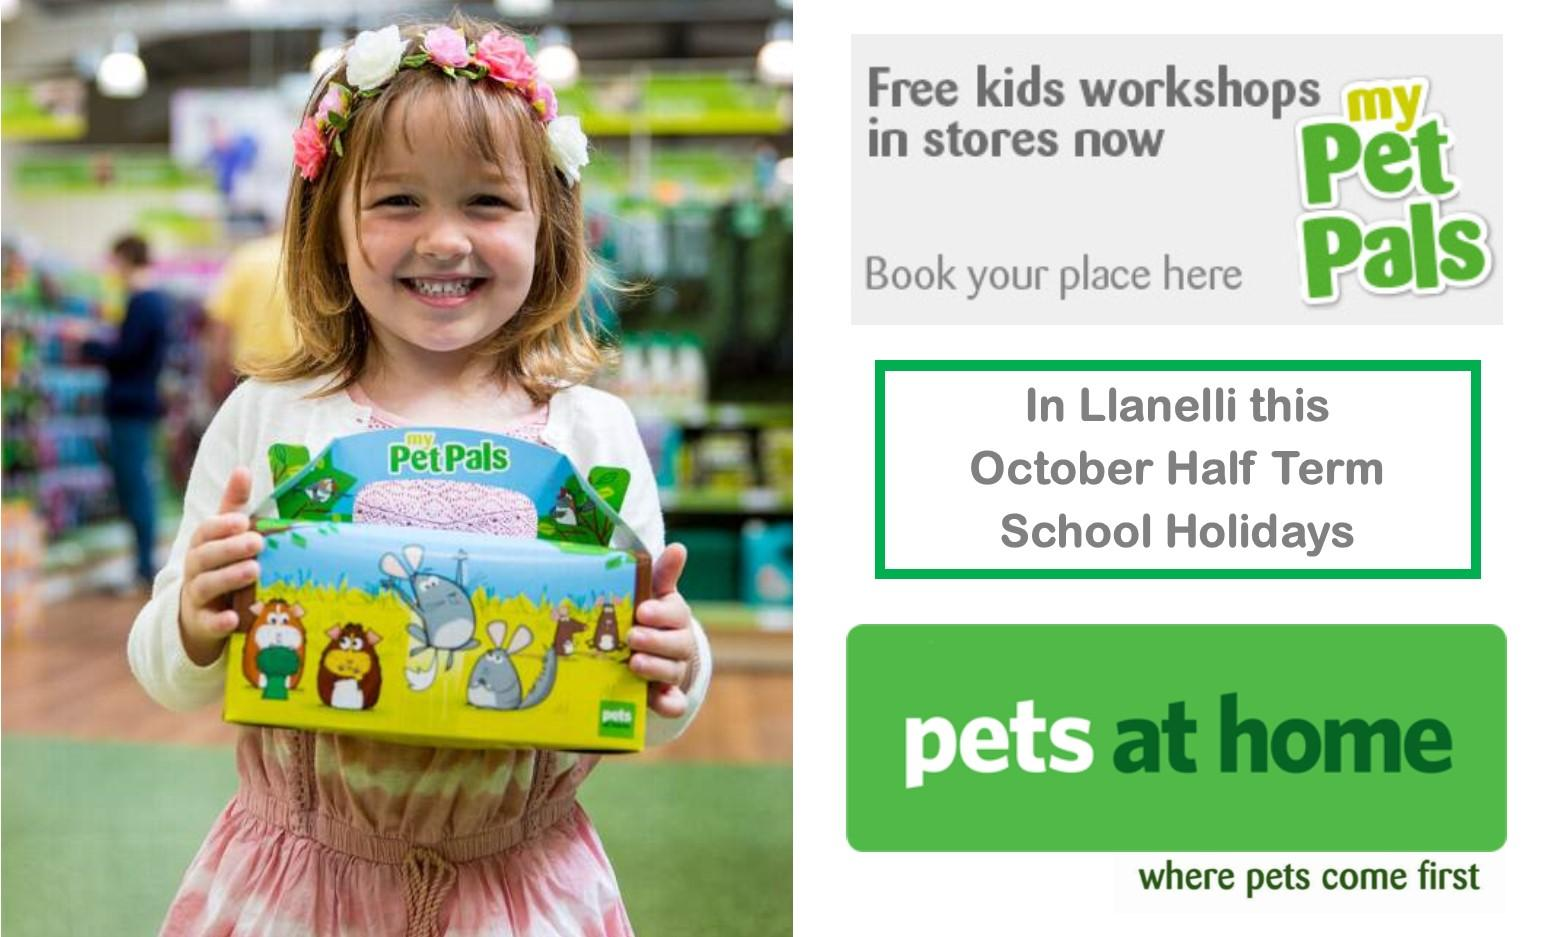 Small Furries Pets at Home Workshop in Llanelli